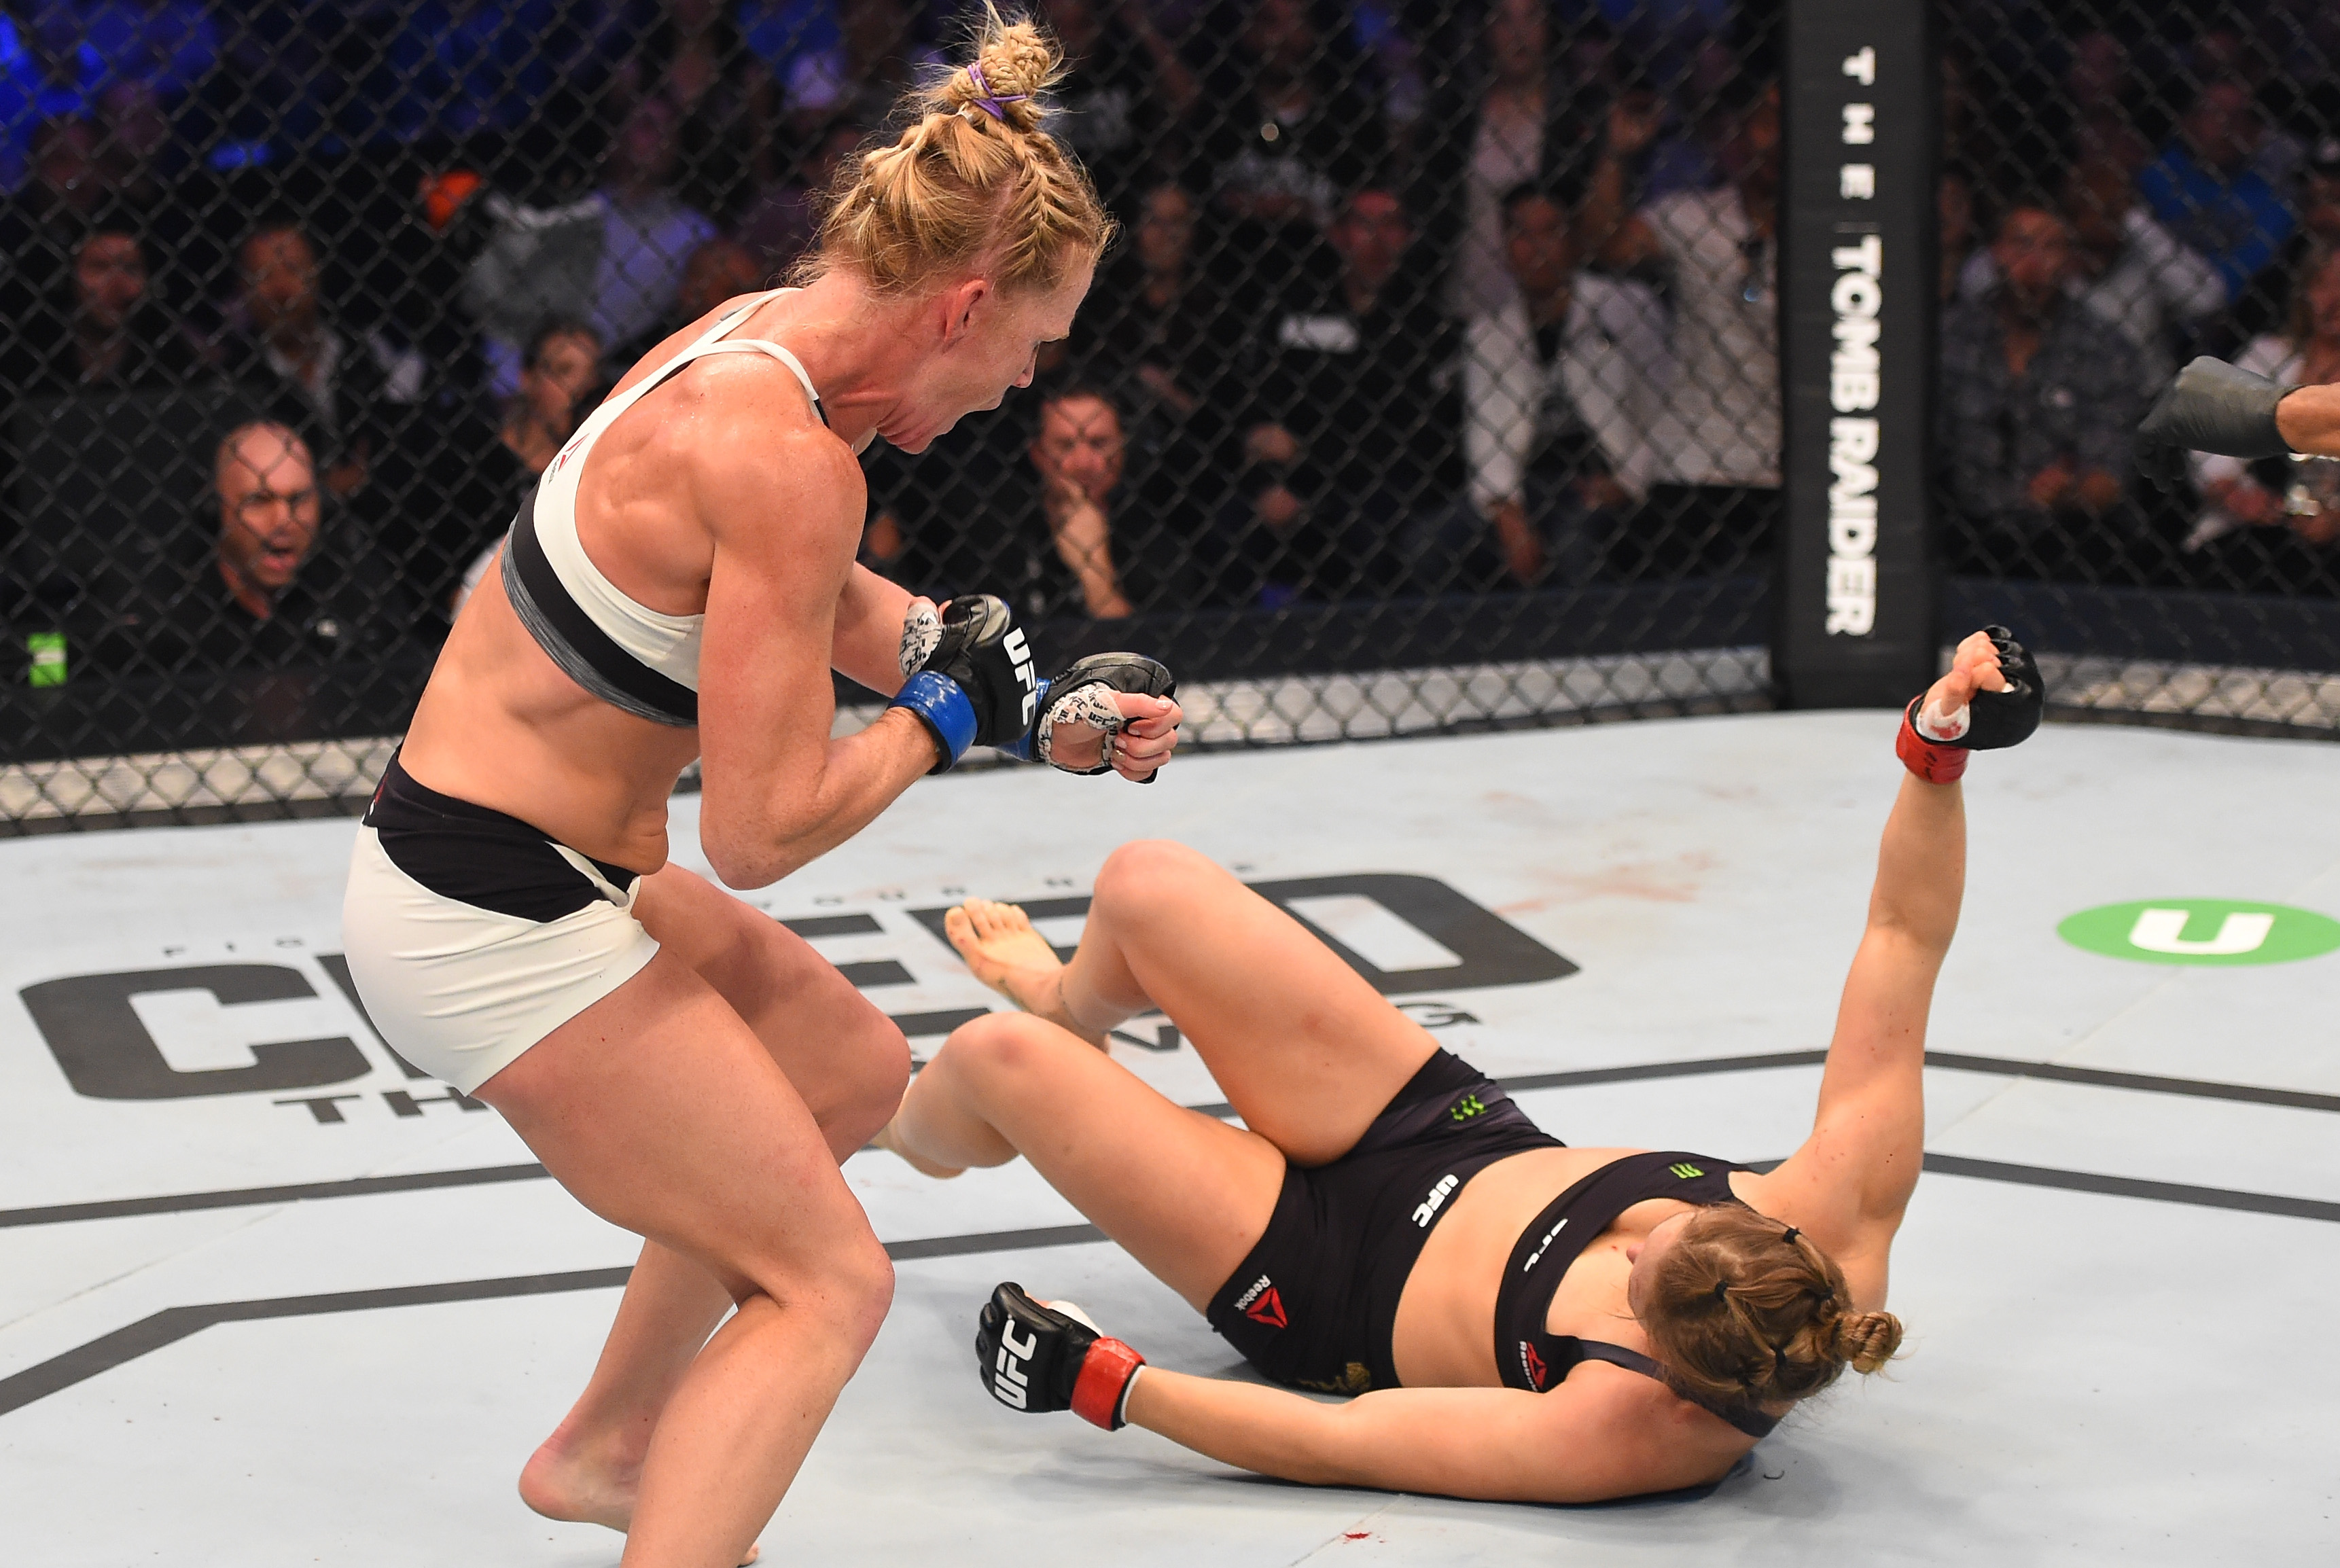 Holly Holm knocks Ronda Rousey to the mat in their UFC 193 fight on November 14, 2015.